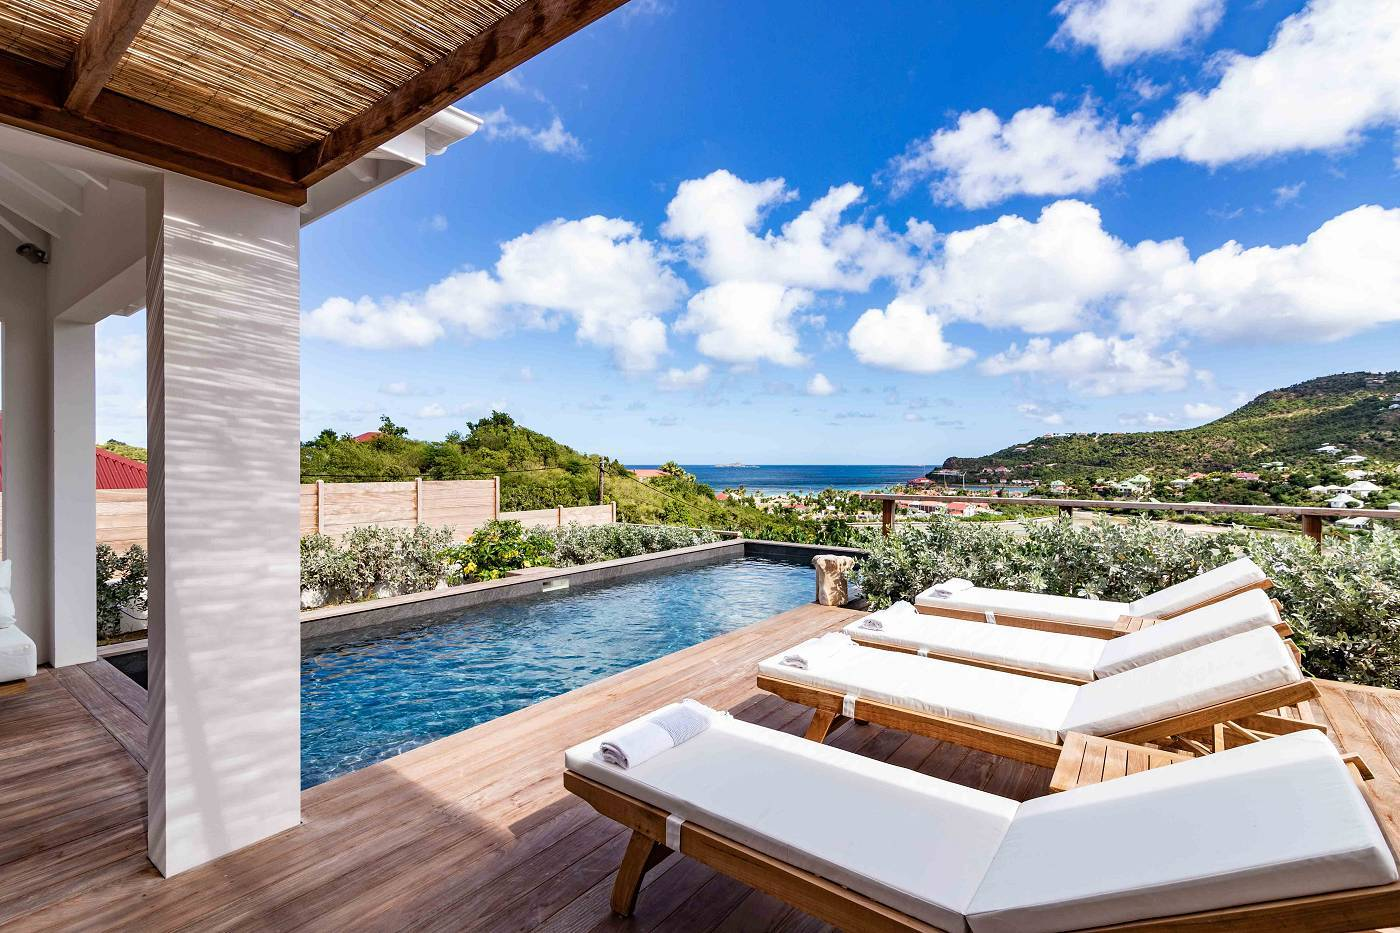 Luxury for Less: 4 St. Barths' Villas We Love